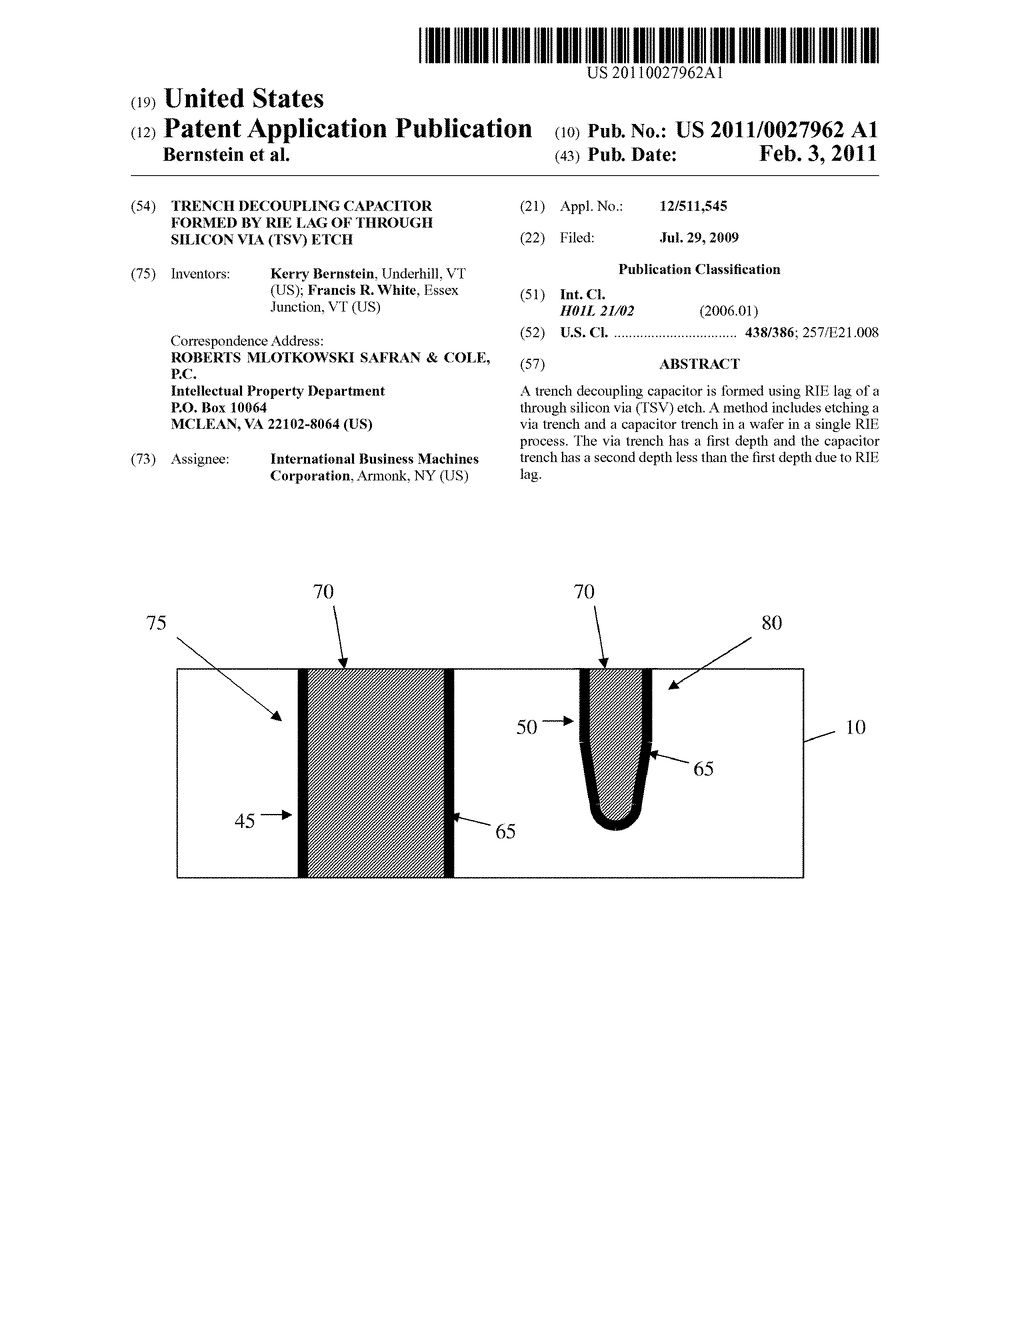 Trench Decoupling Capacitor Formed By Rie Lag Of Through Silicon Via Schematic Diagram Tsv Etch And Image 01